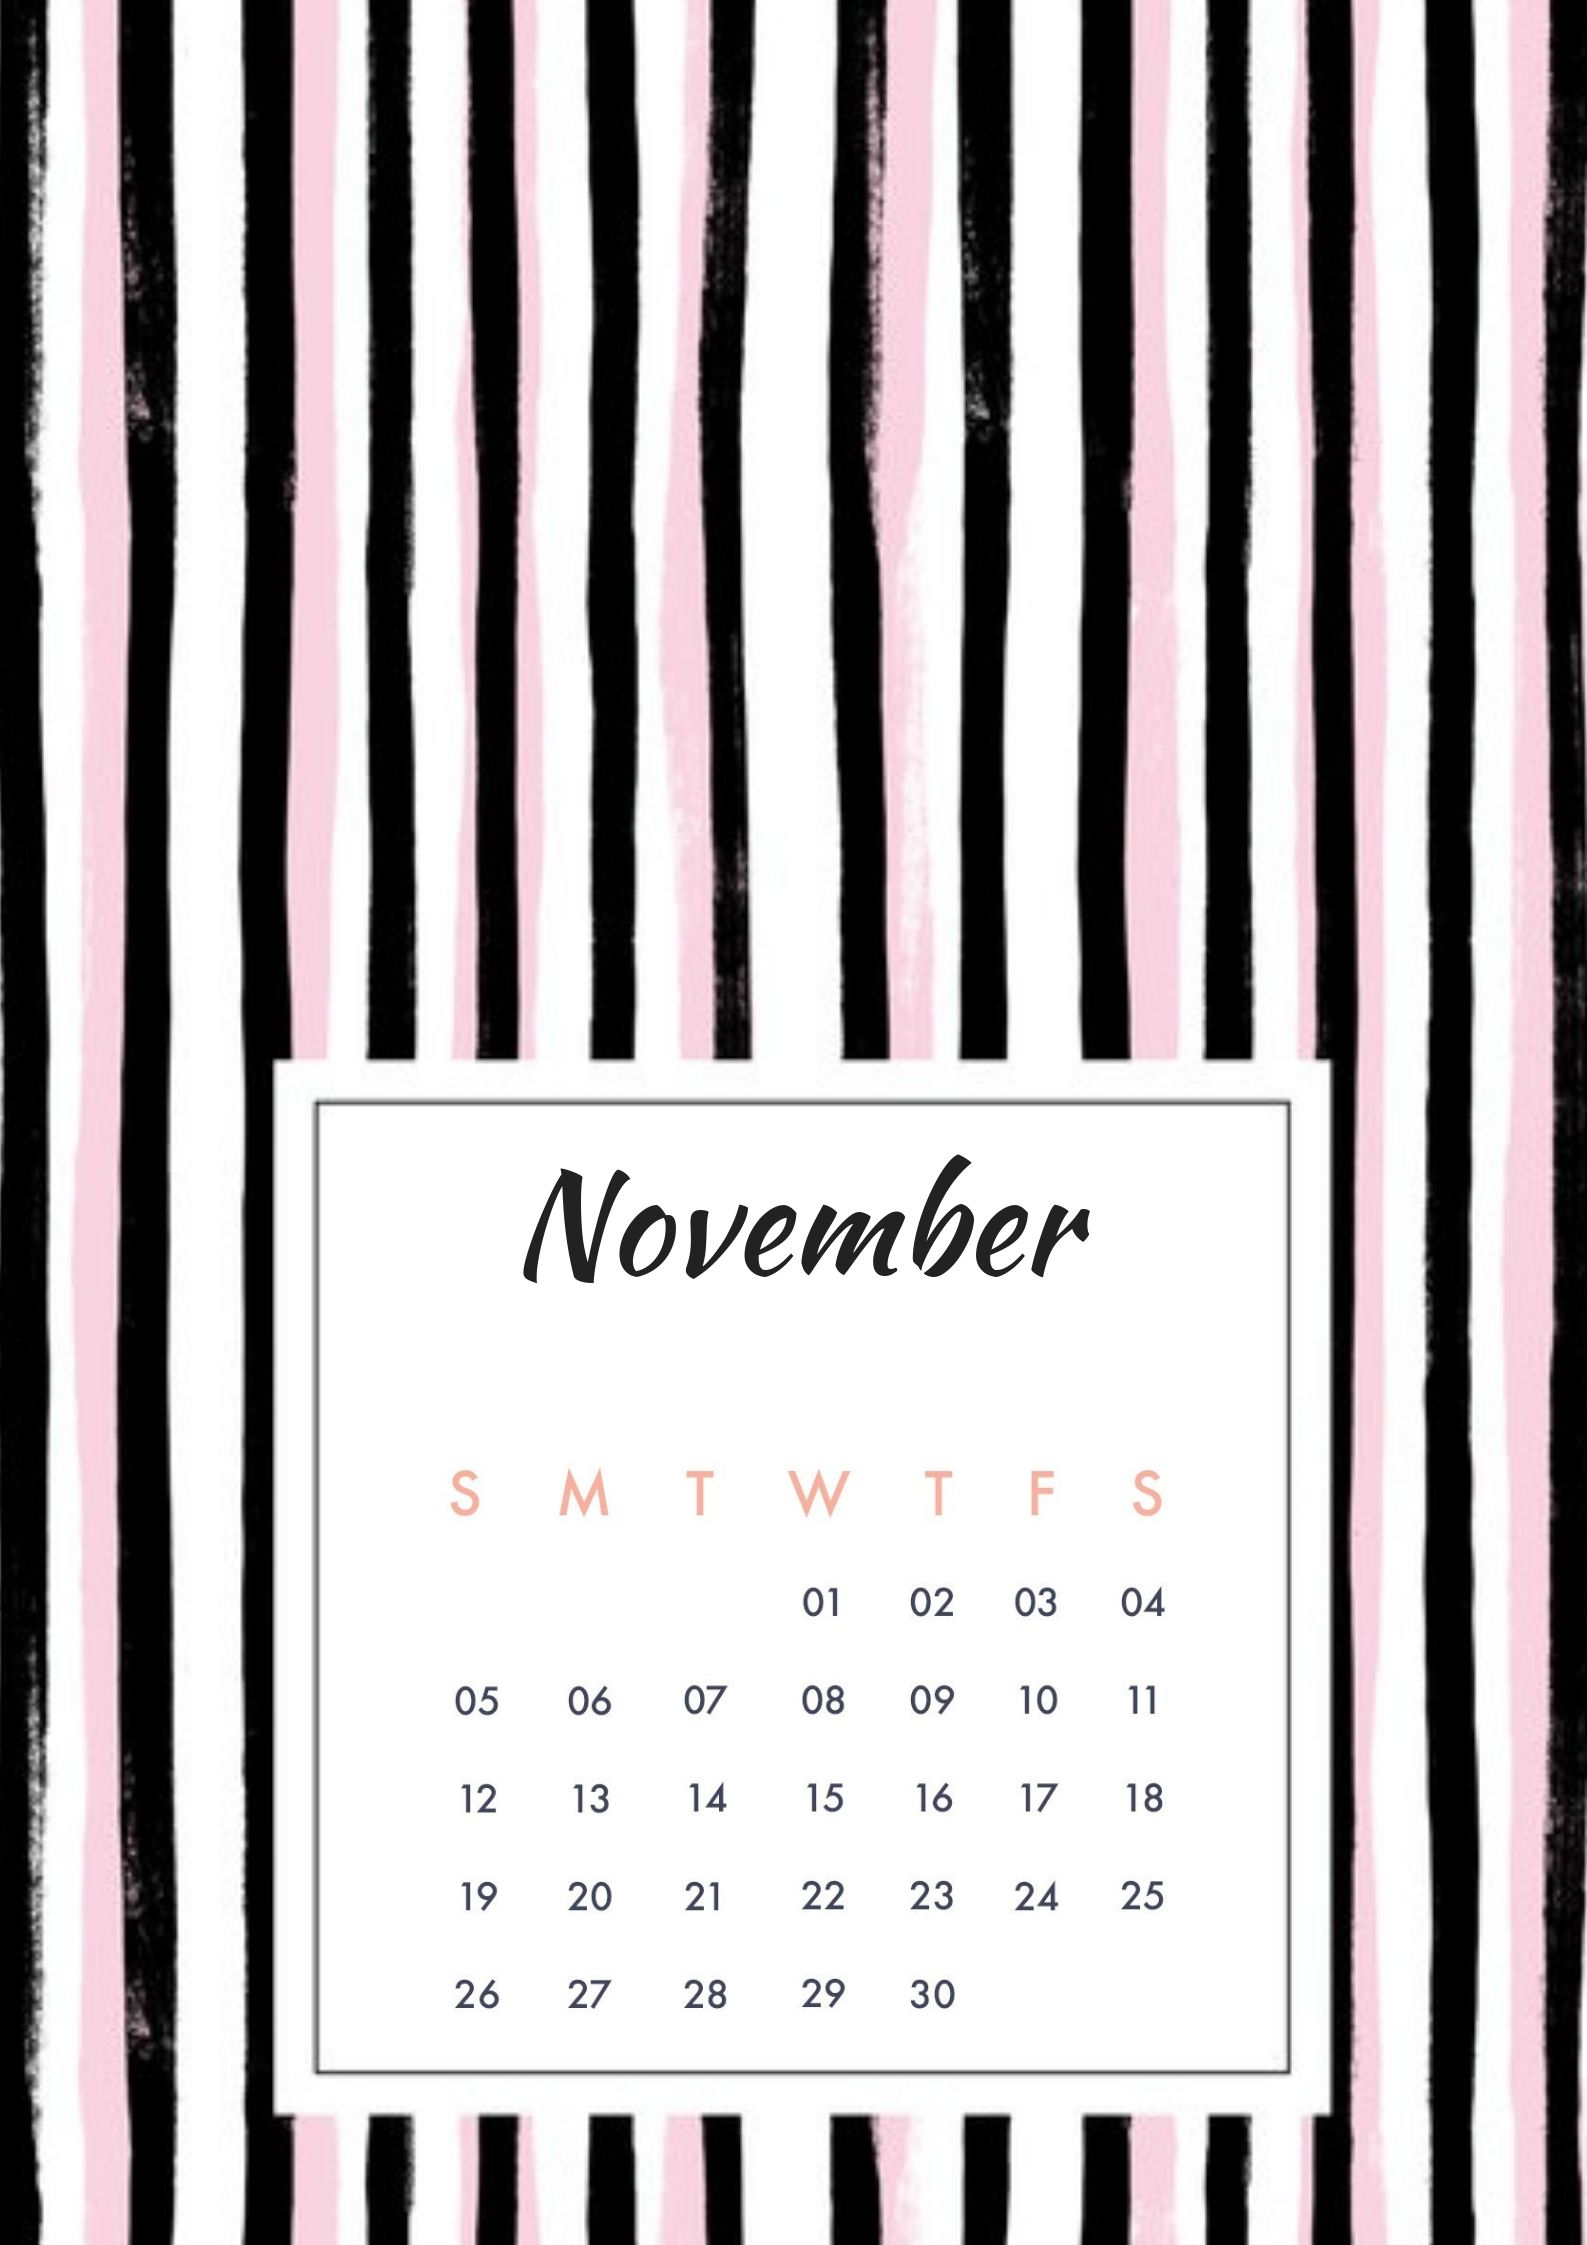 November 2018 Screensaver Calendar